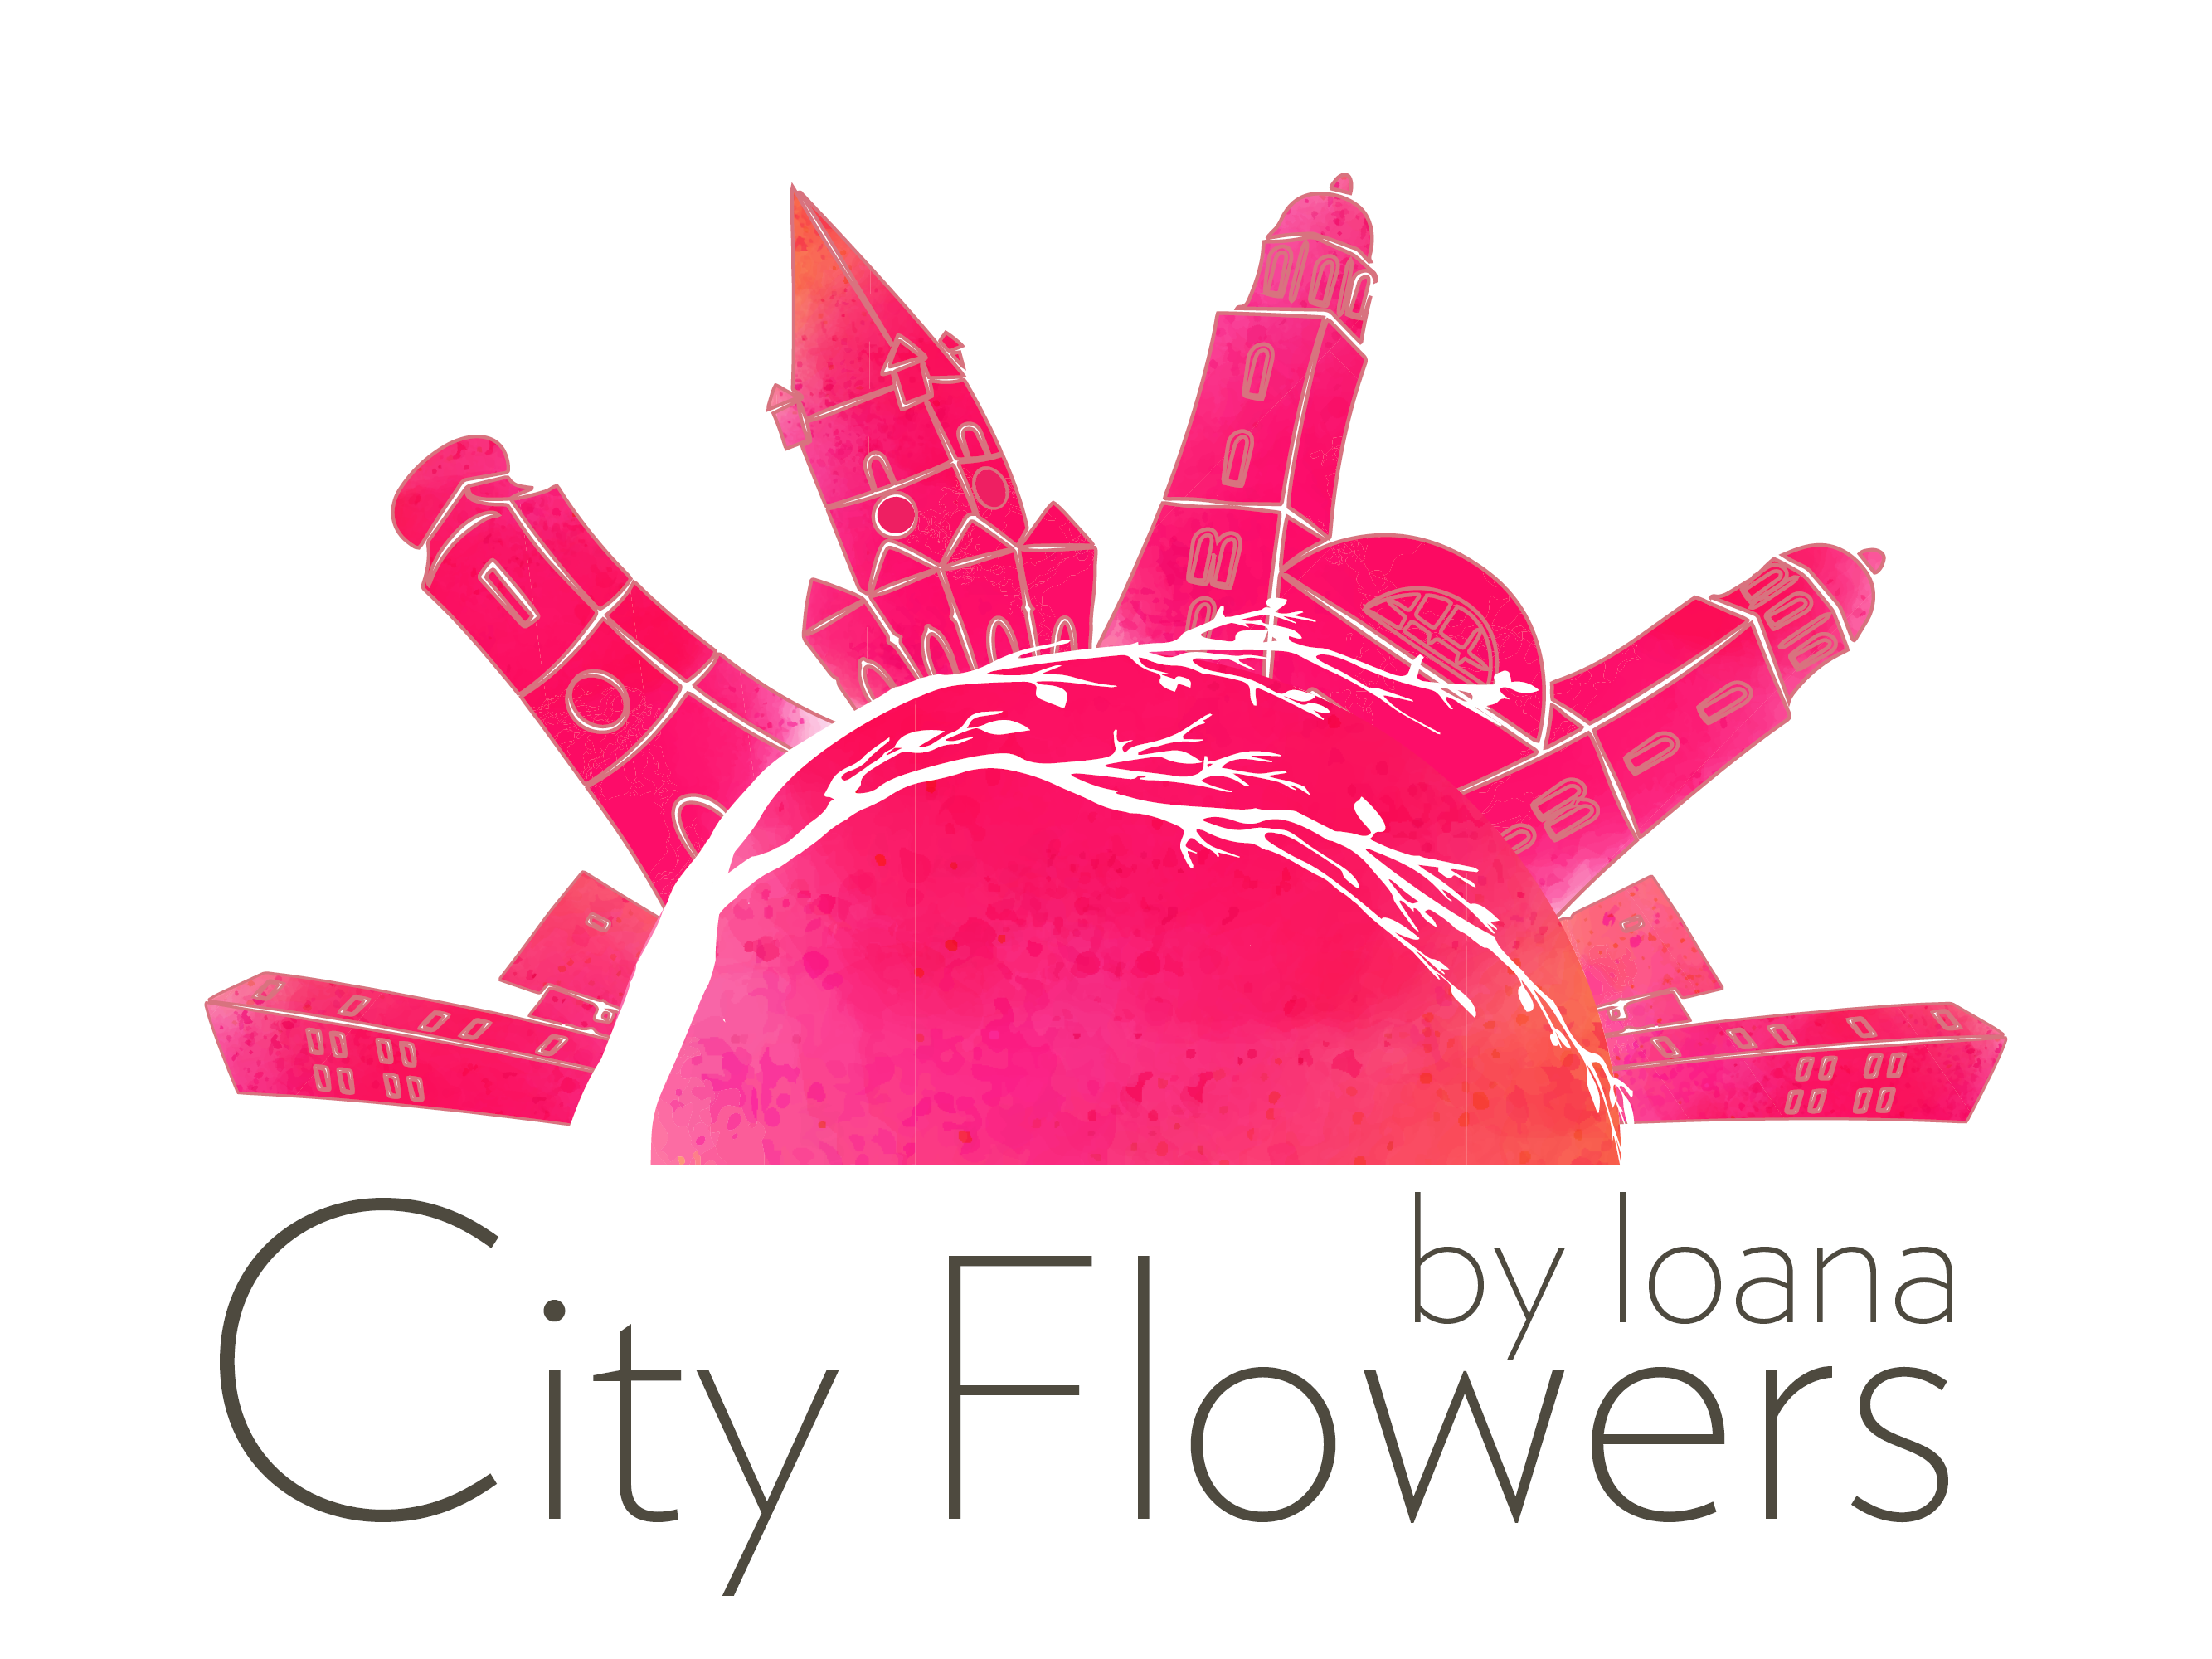 City Flowers by Ioana